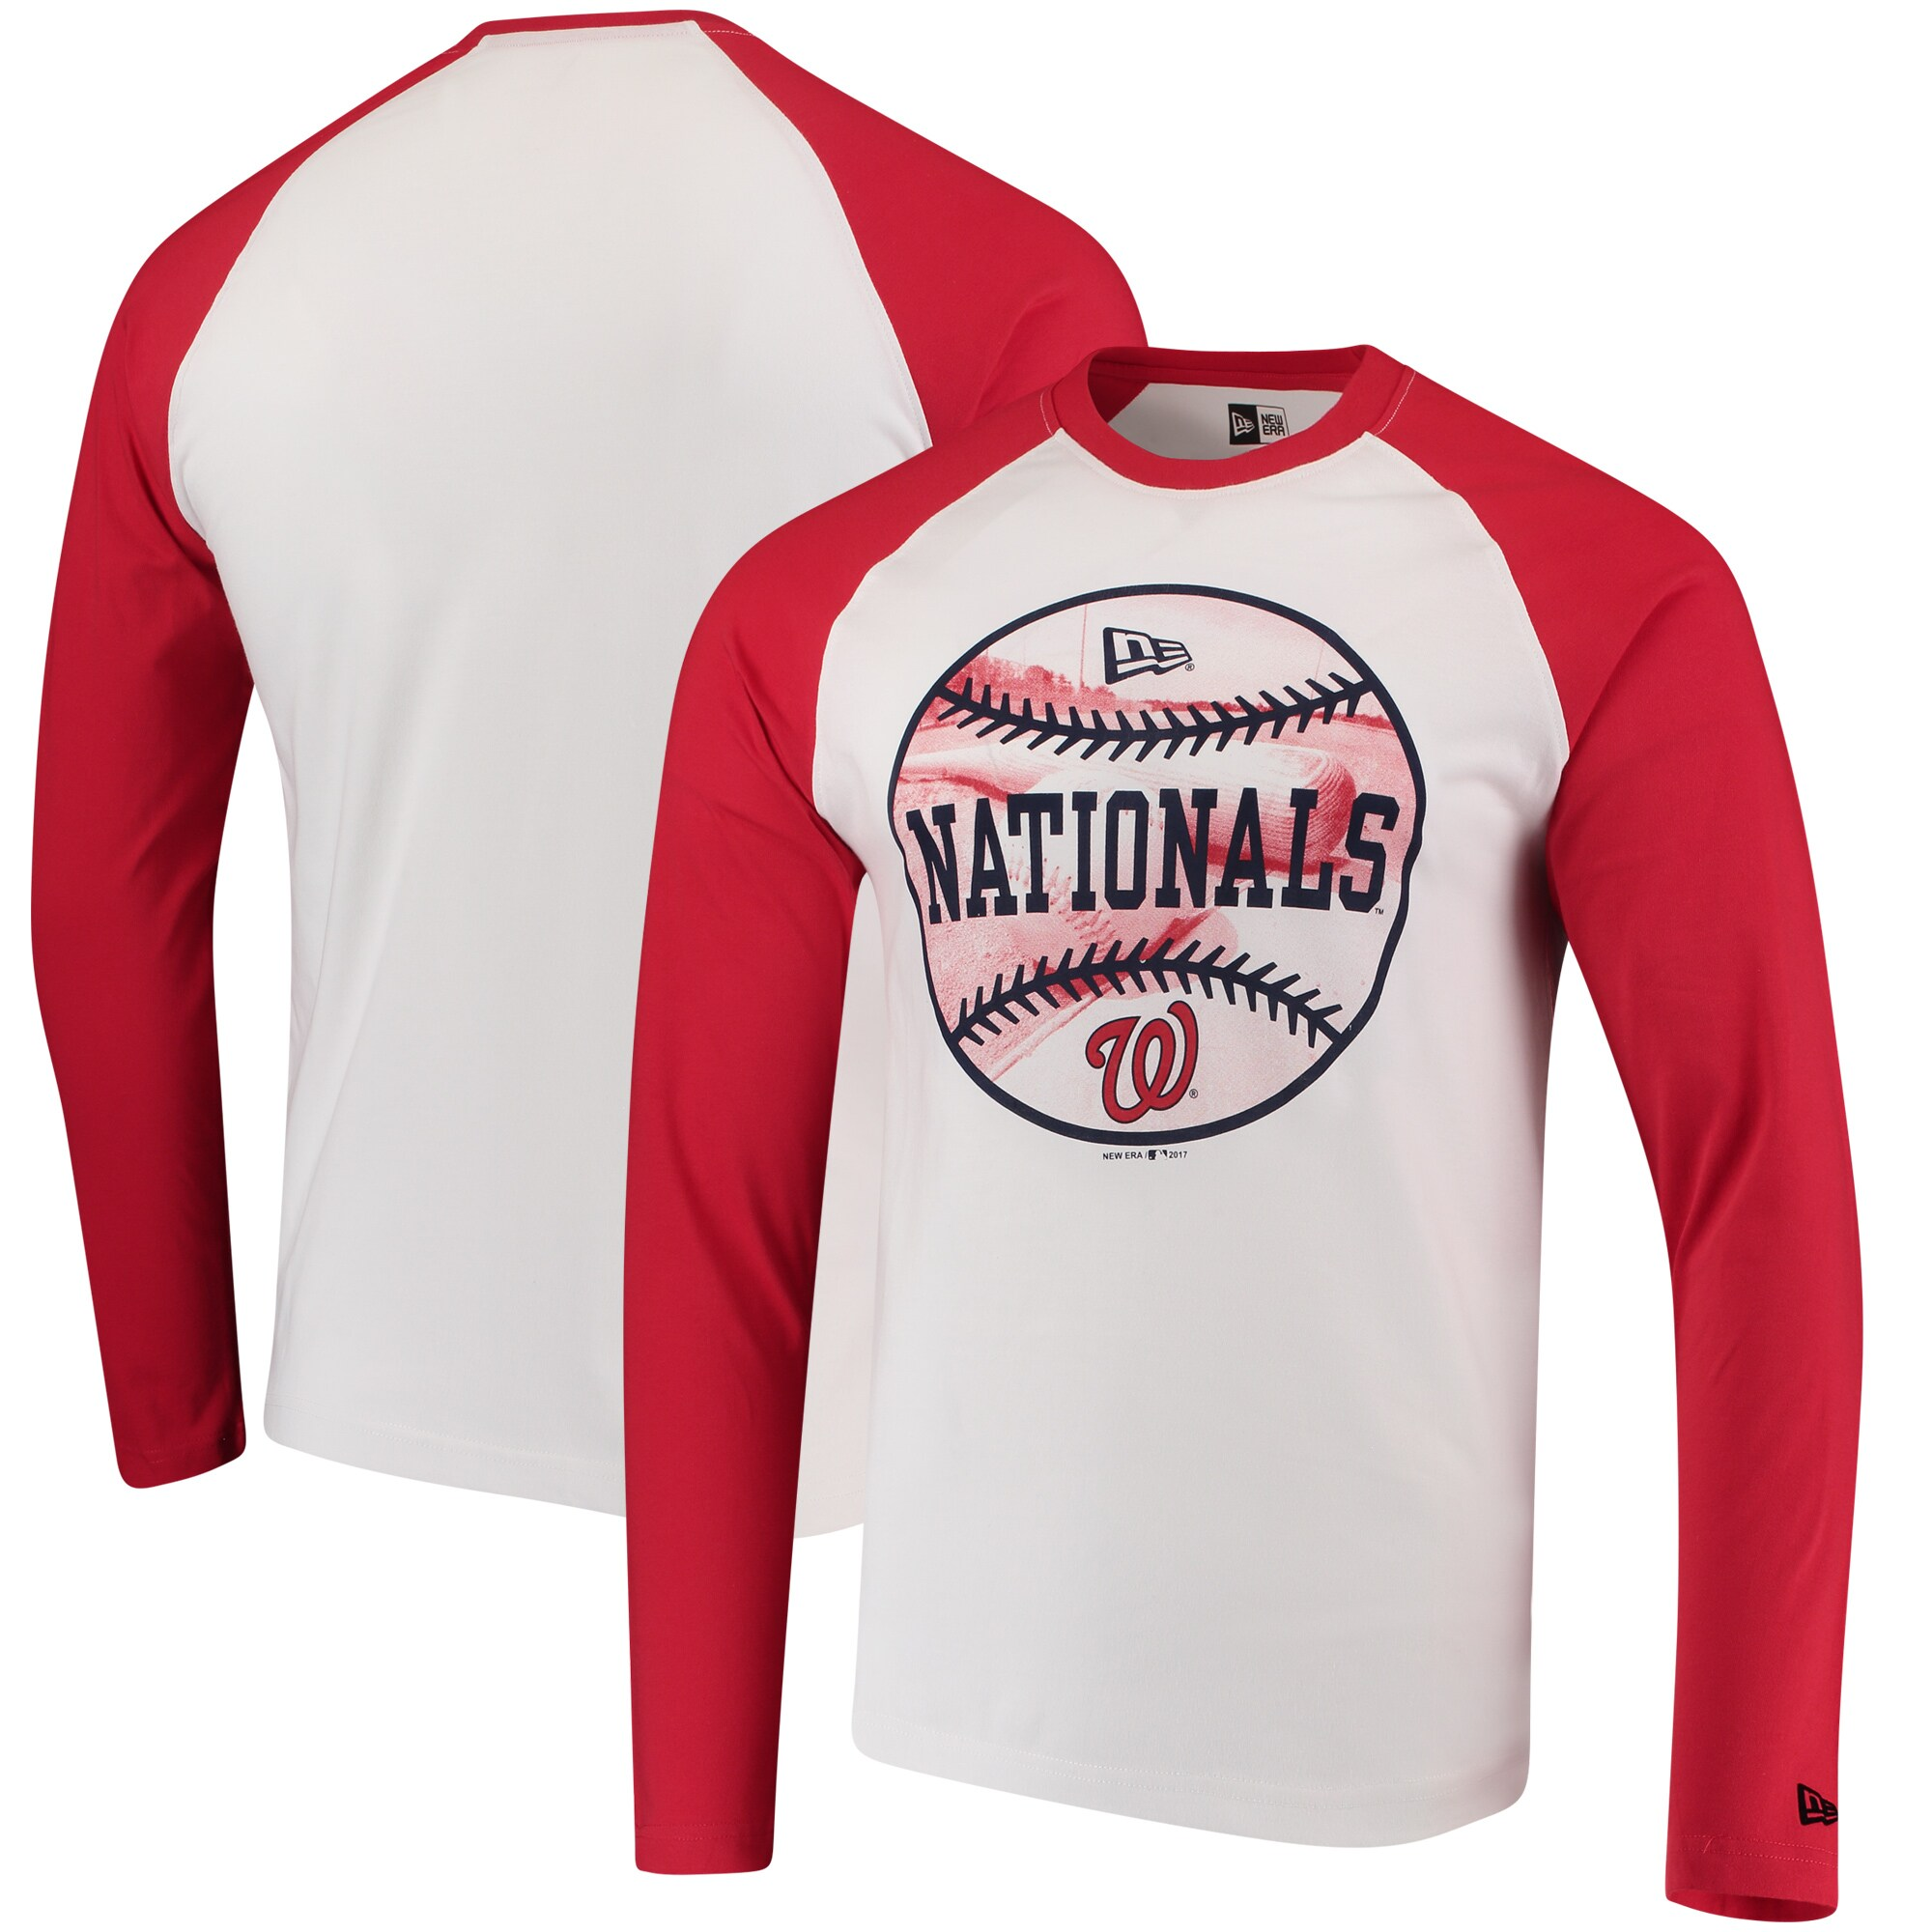 Washington Nationals New Era Raglan Long Sleeve T-Shirt - White/Red